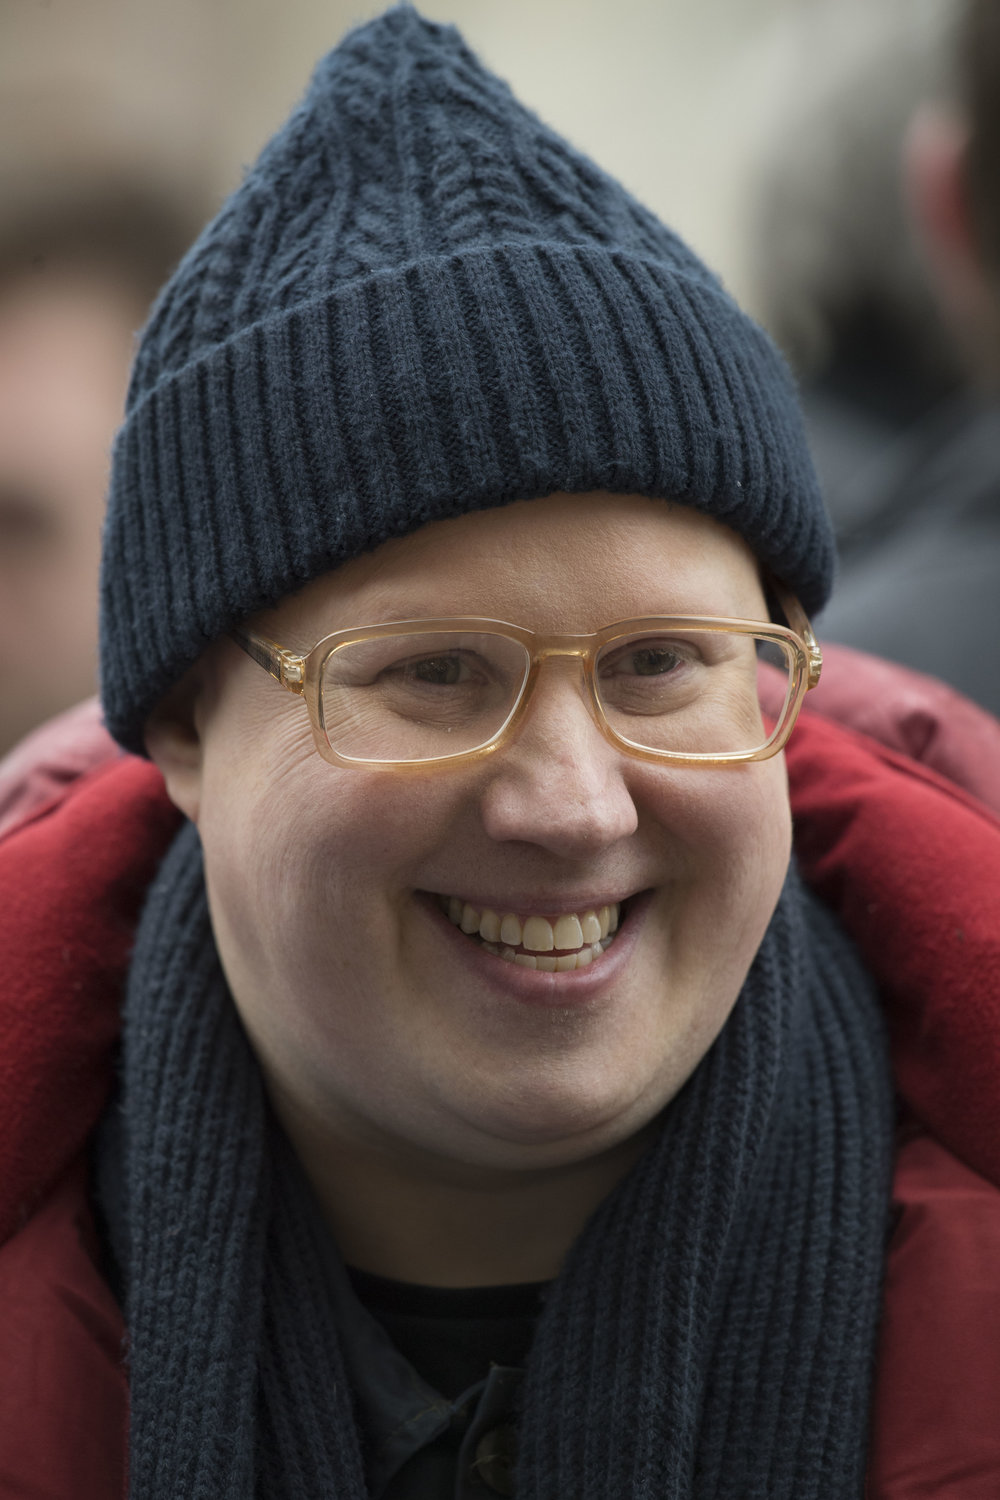 Matt Lucas spotted during filming for Series 10 of Doctor Who at Mount Stuart Square in Cardiff Bay, South Wales.